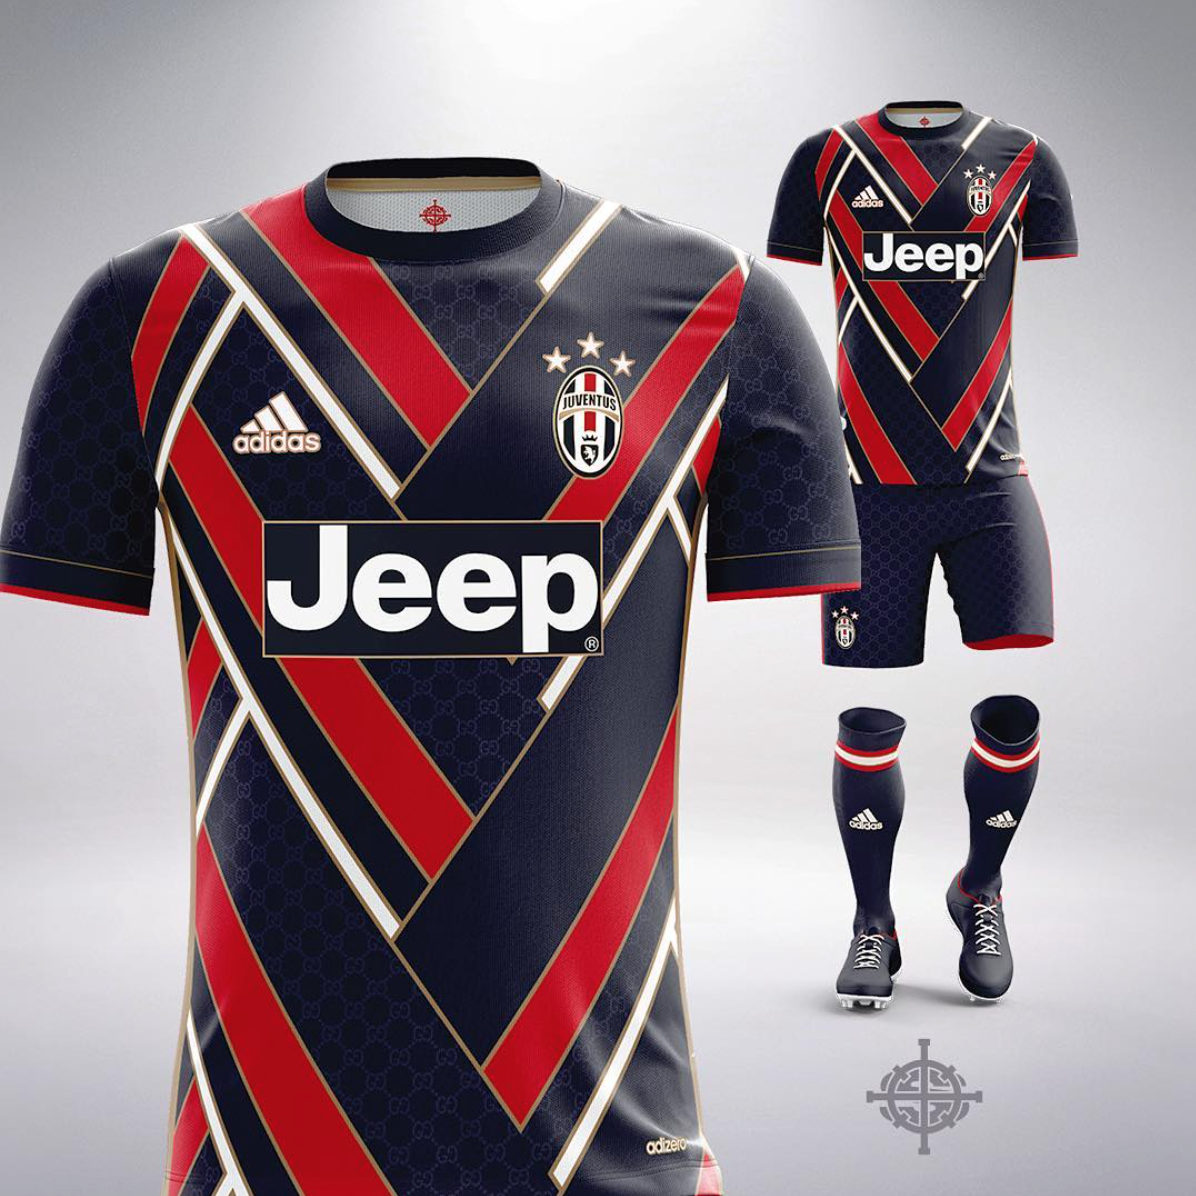 Psg black and pink jersey - Settpace Juventus